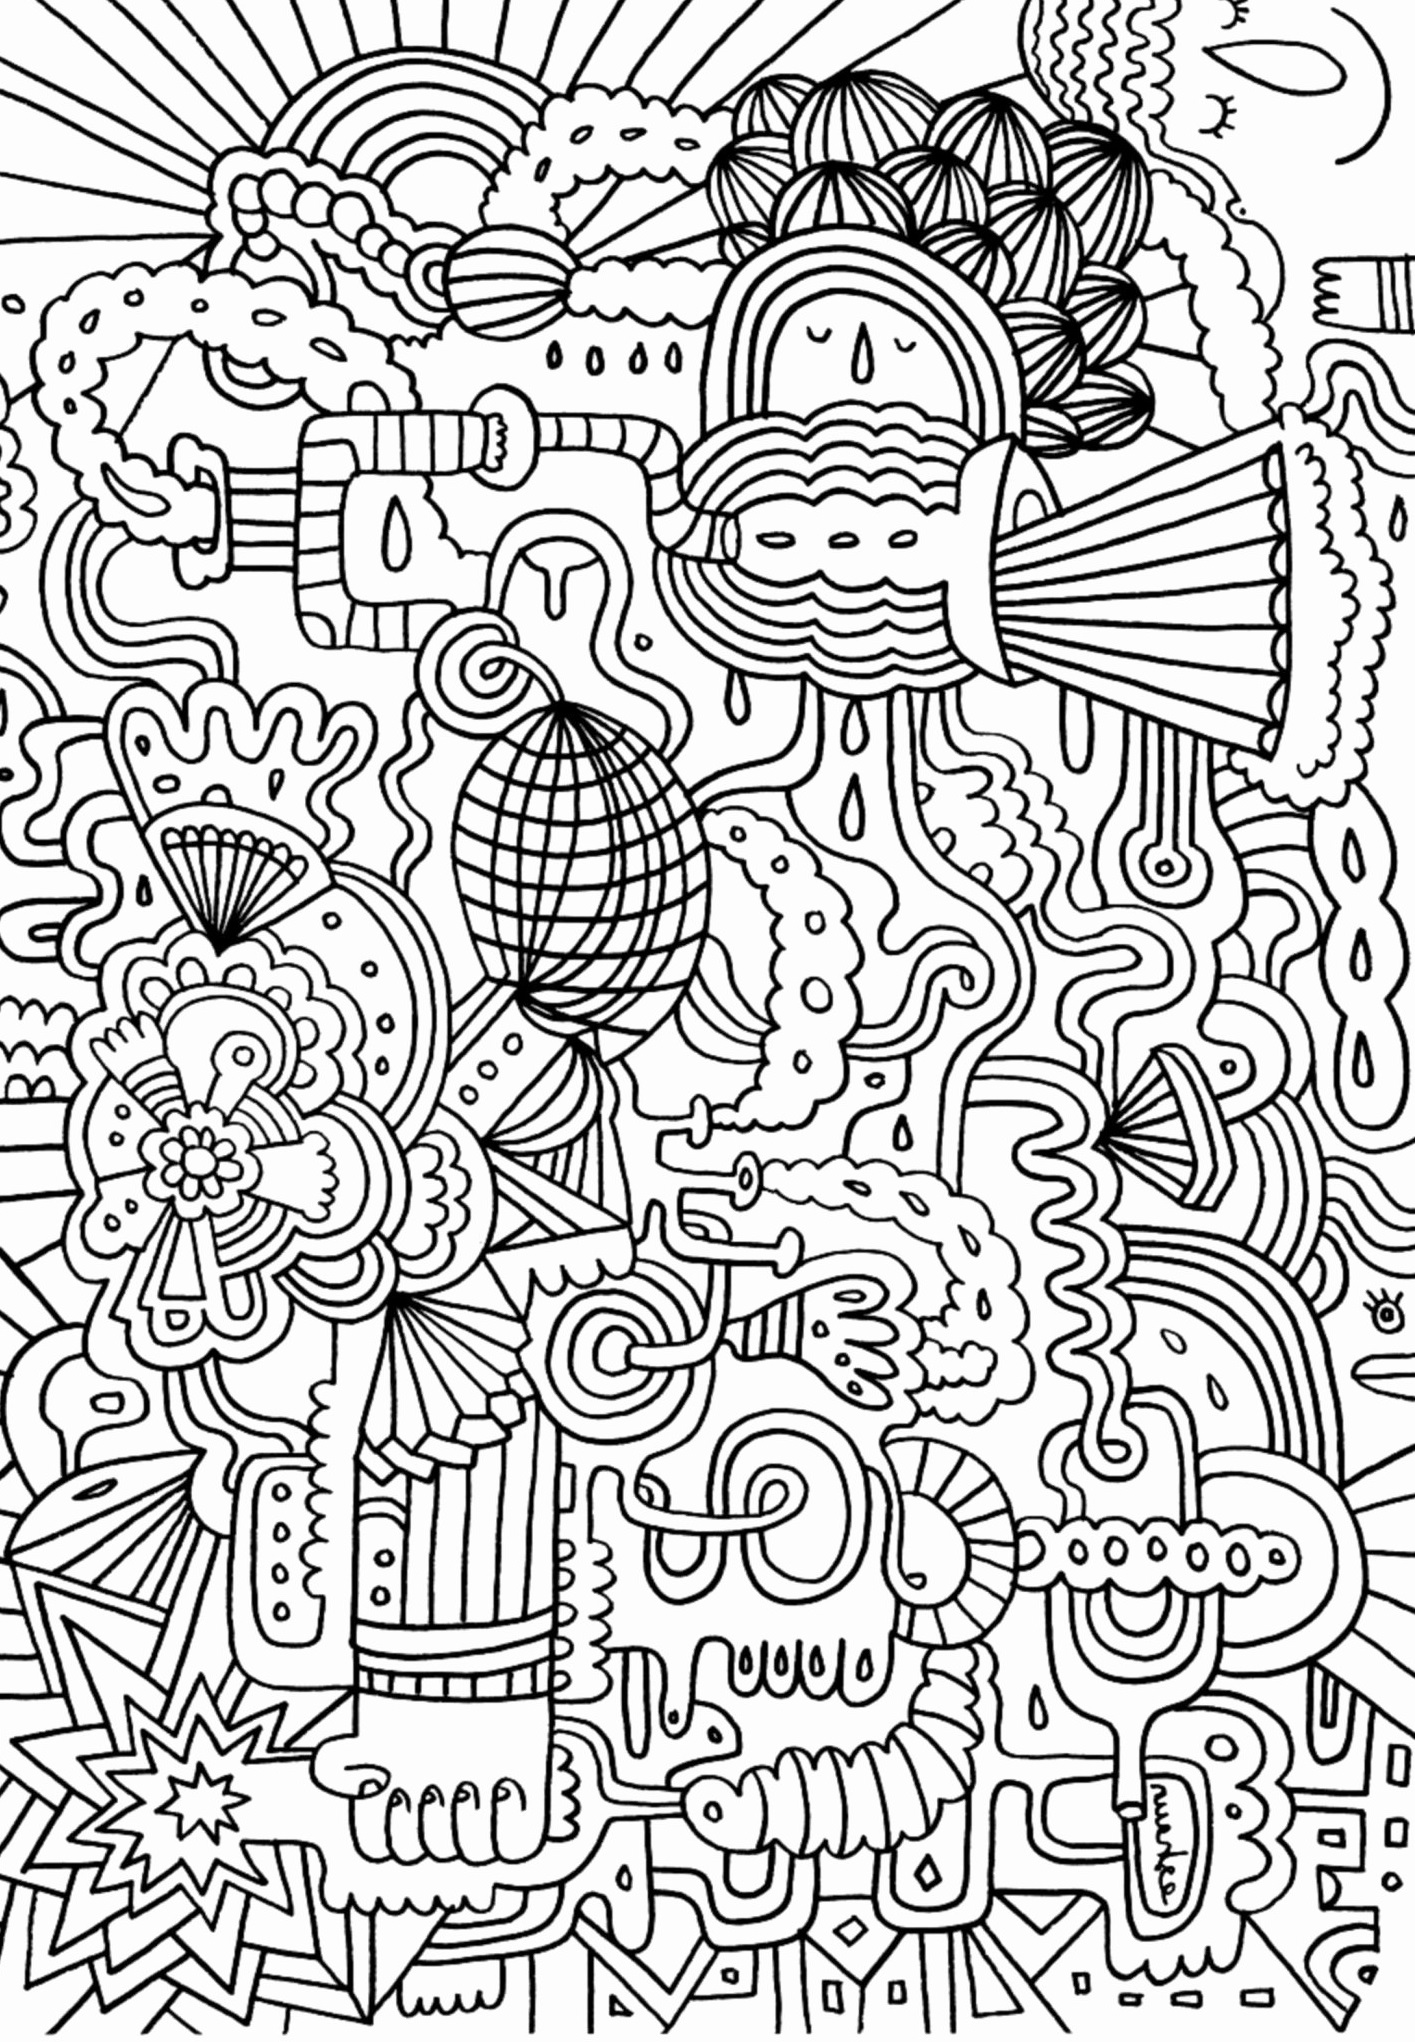 coloring pages for teens printable free coloring pages printable pictures to color kids for coloring teens printable pages